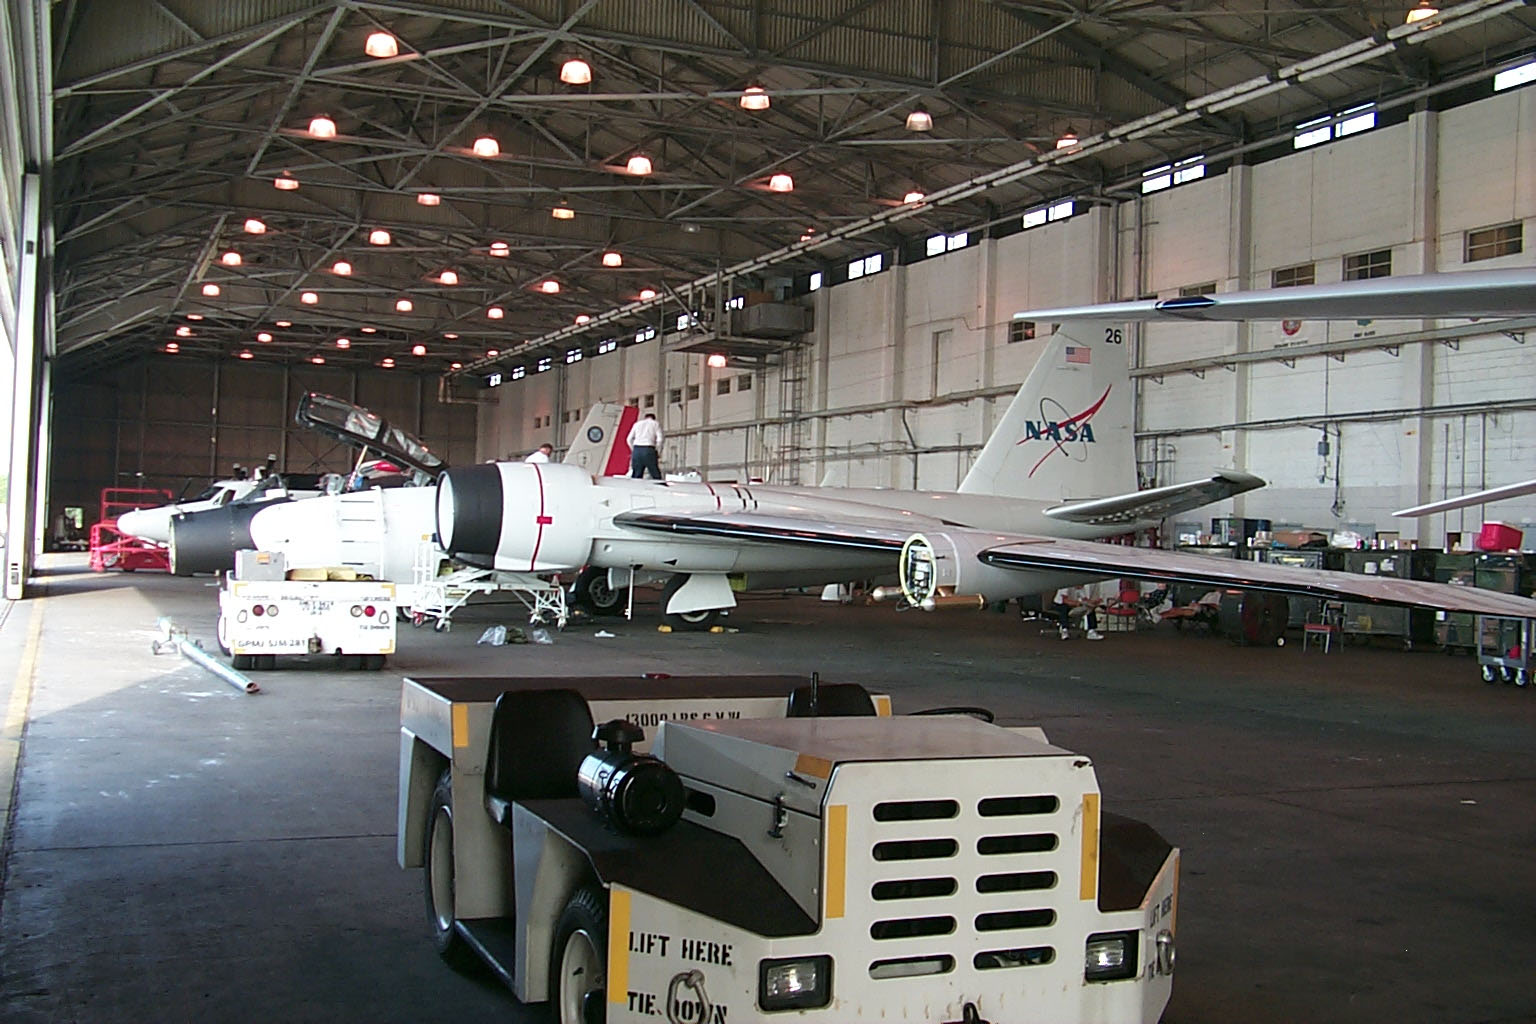 a nasa aircraft in hangar - photo #21